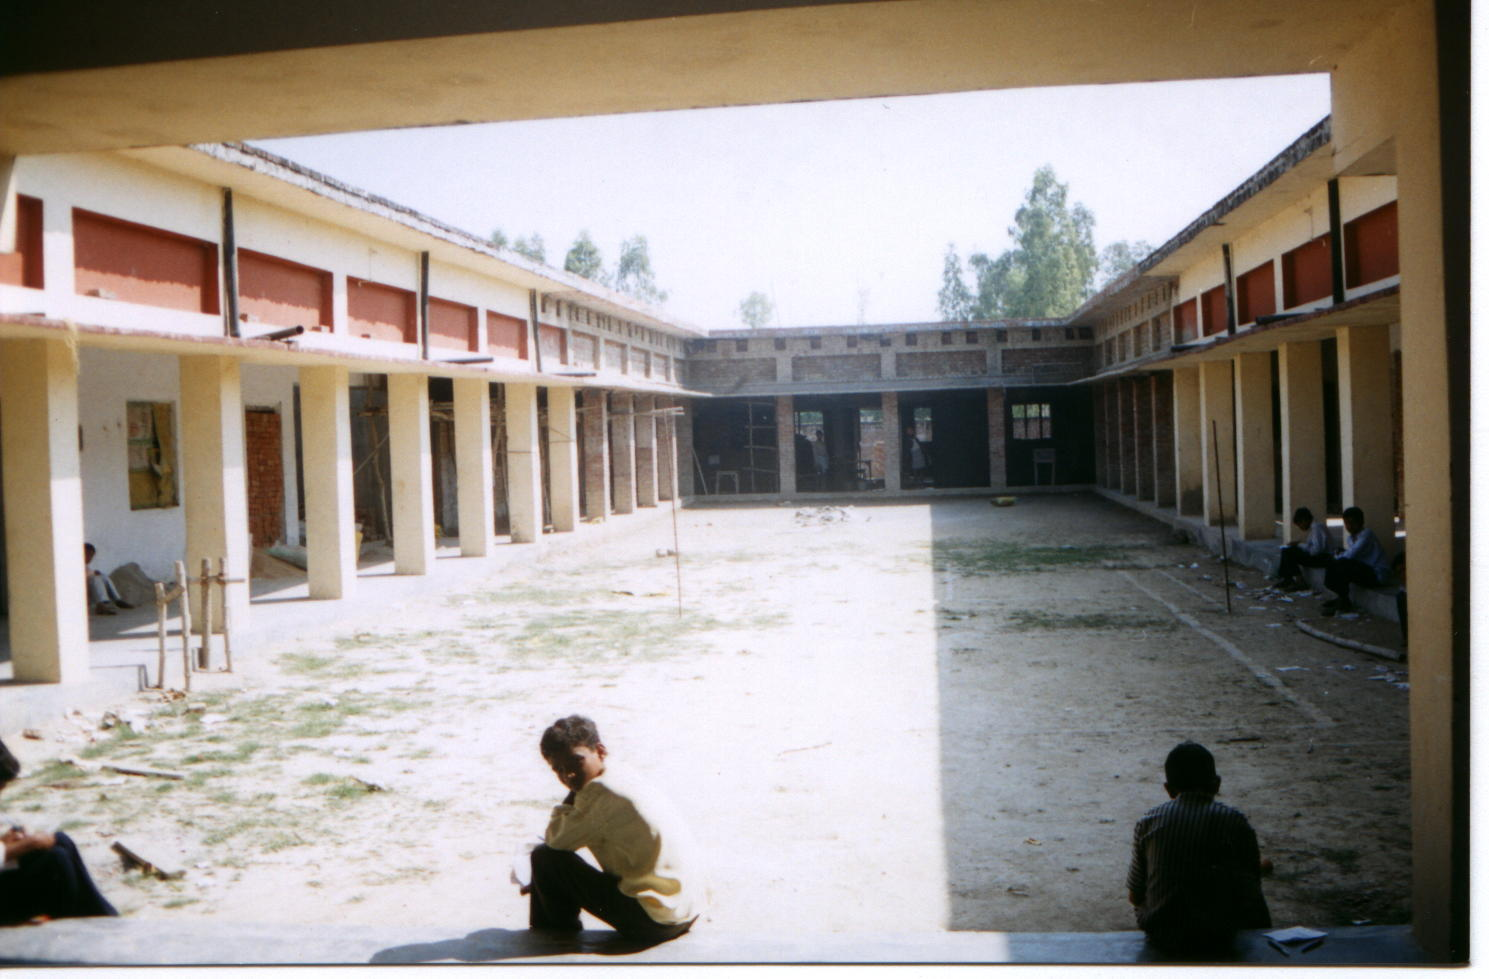 picture shows the inside view of college